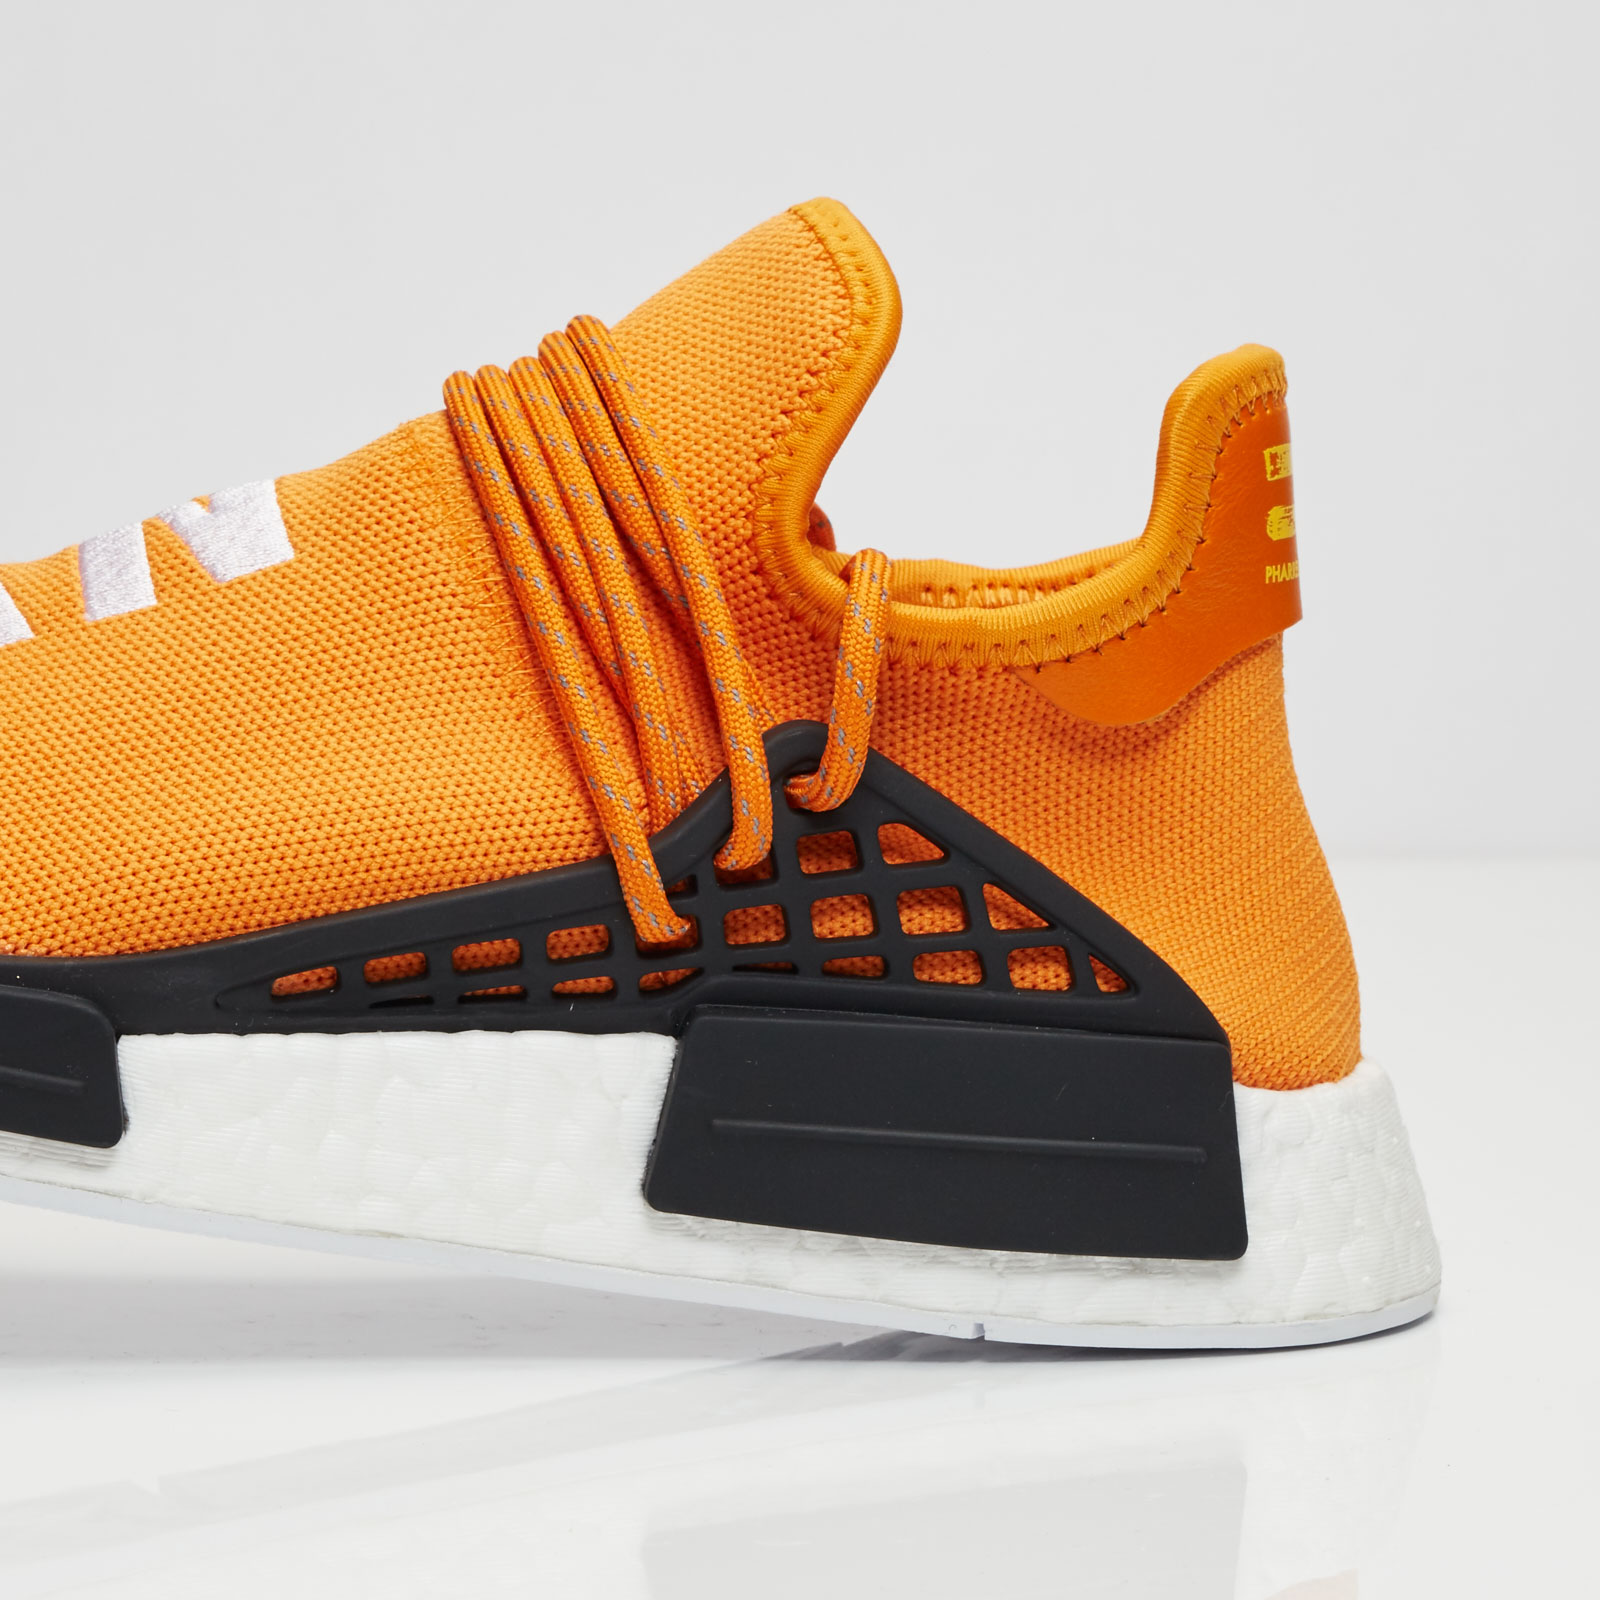 new concept 62d67 7dcb4 adidas PW Human Race NMD - Bb3070 - Sneakersnstuff   sneakers   streetwear  online since 1999